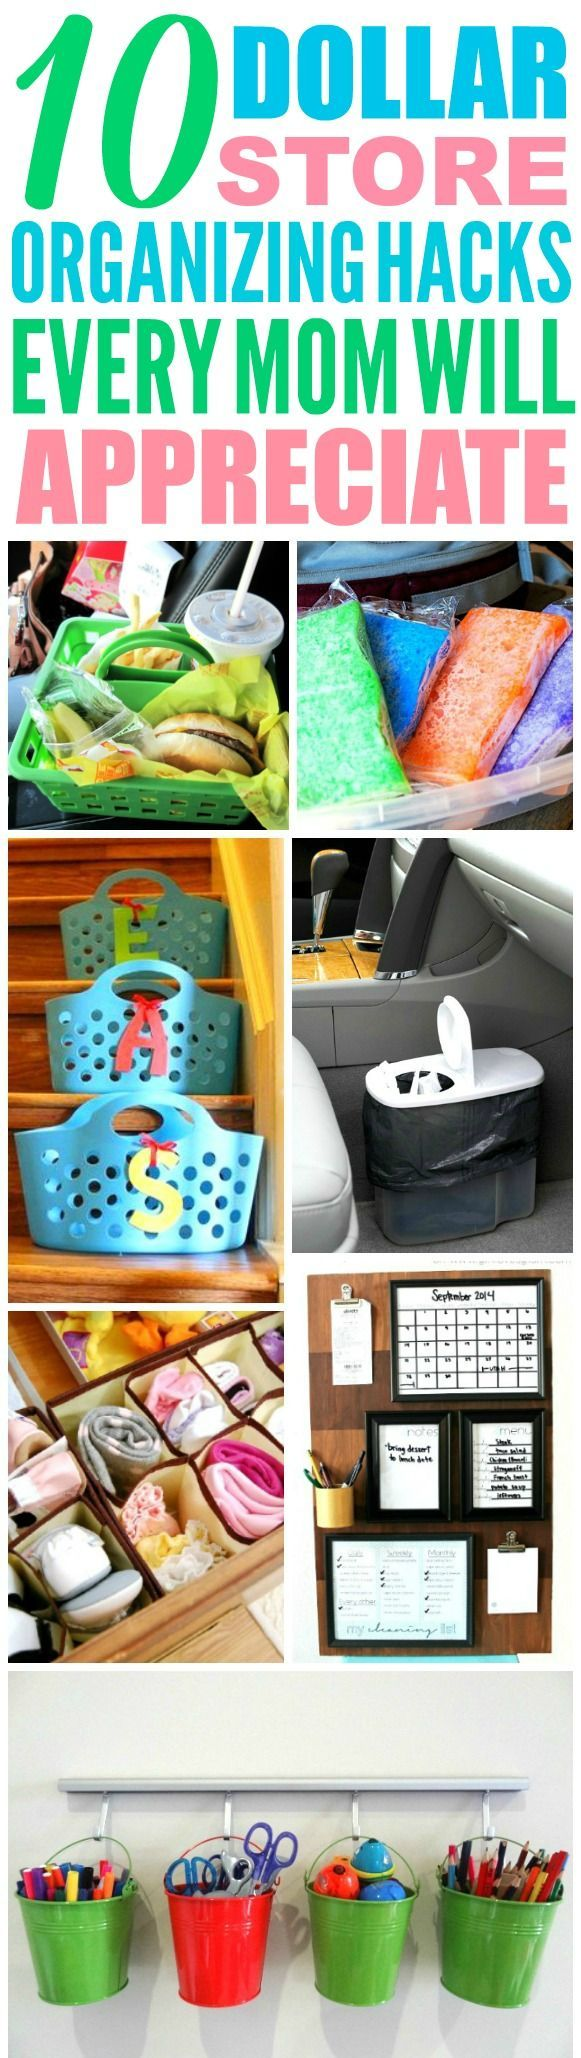 8 Dollar Store Hacks Every Parent Should Know